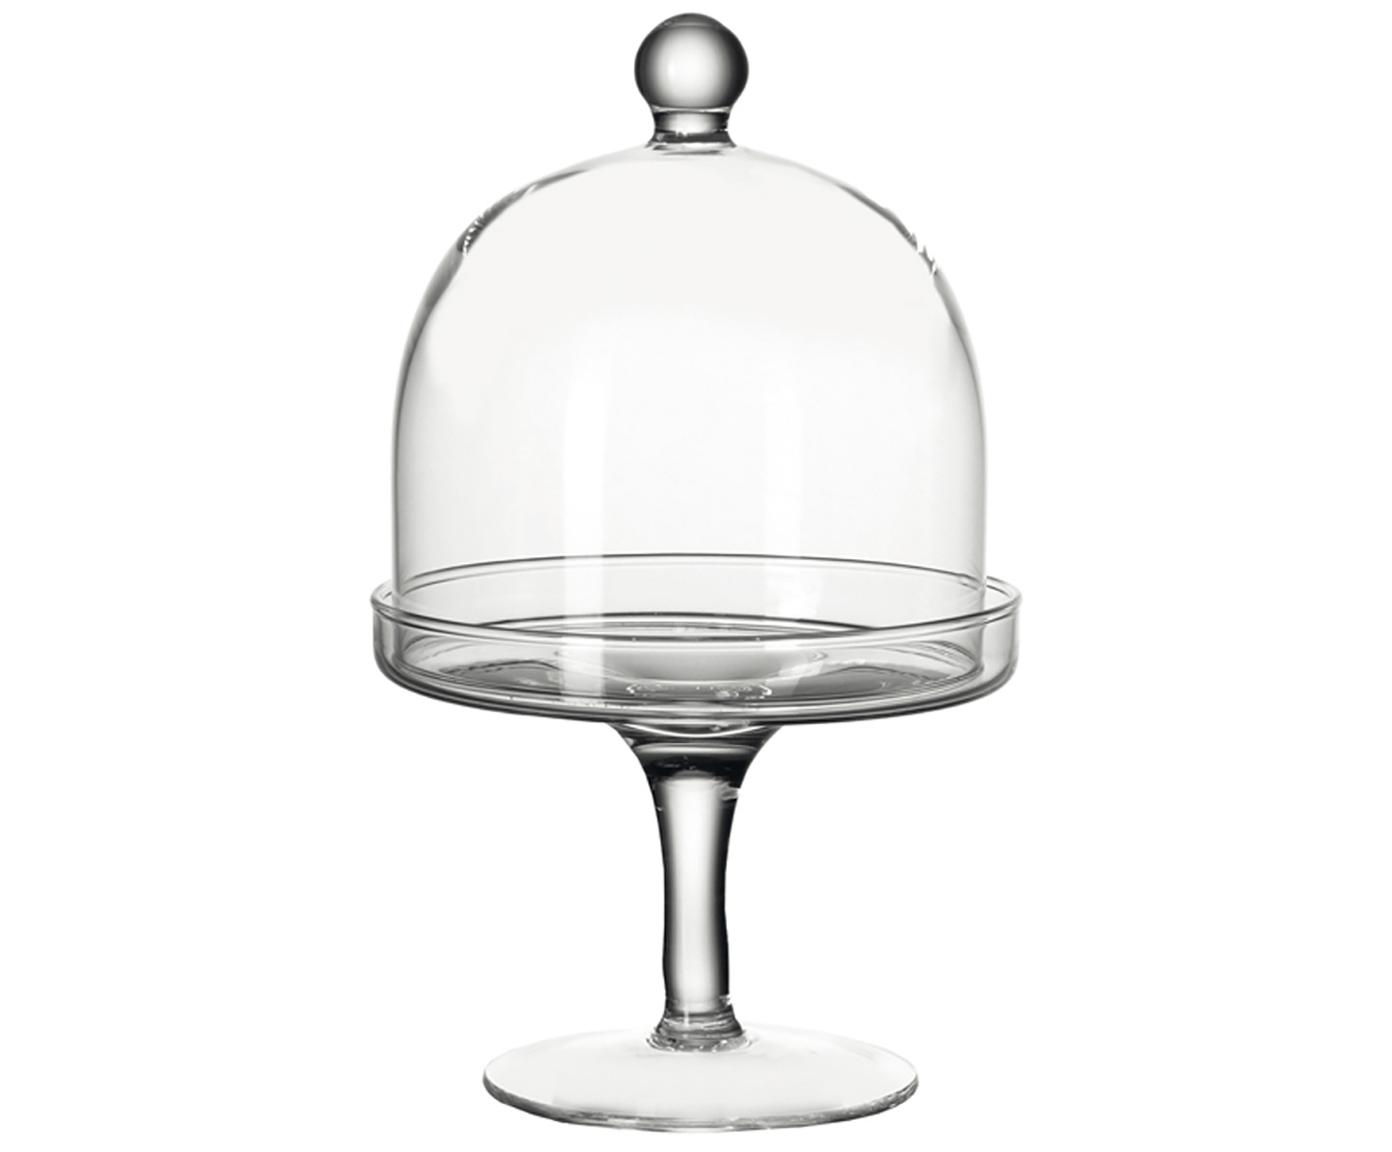 XS taartplateau Dolce, Glas, Transparant, H 20 cm